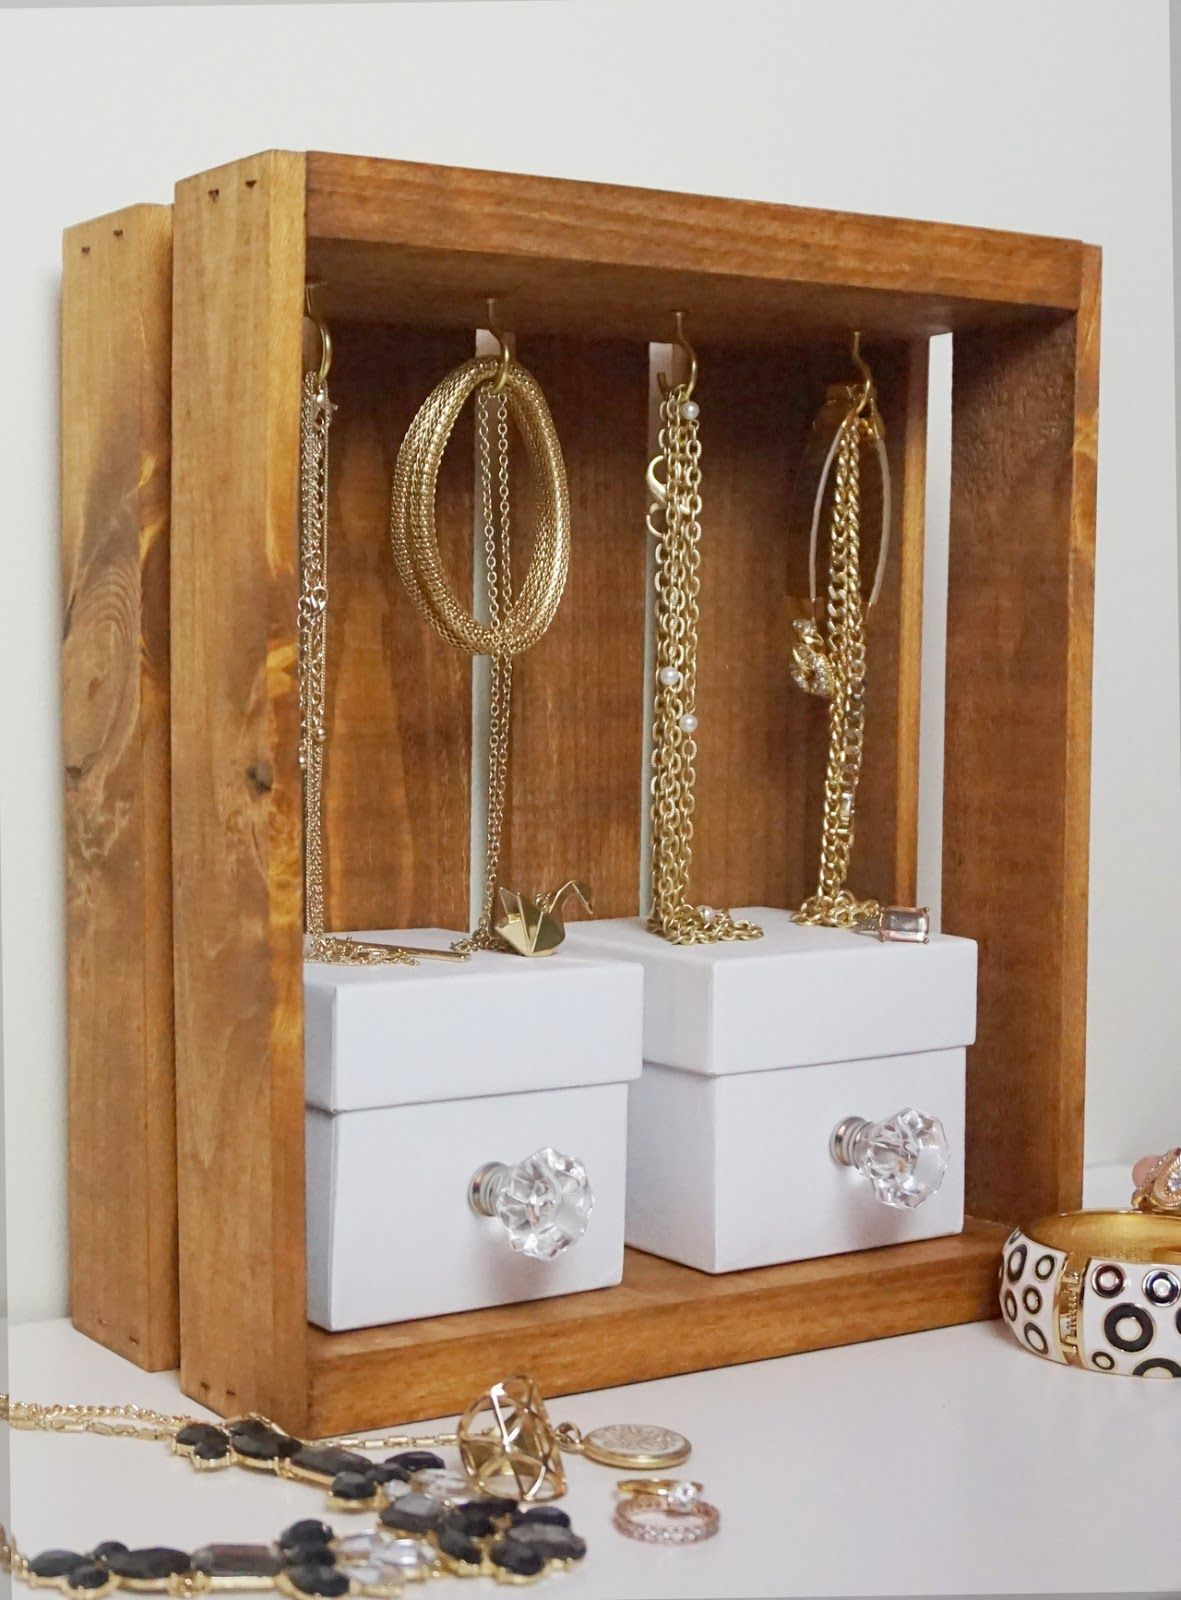 Thediydiary do it yourself jewelry display crate mobiliario thediydiary do it yourself jewelry display crate solutioingenieria Gallery